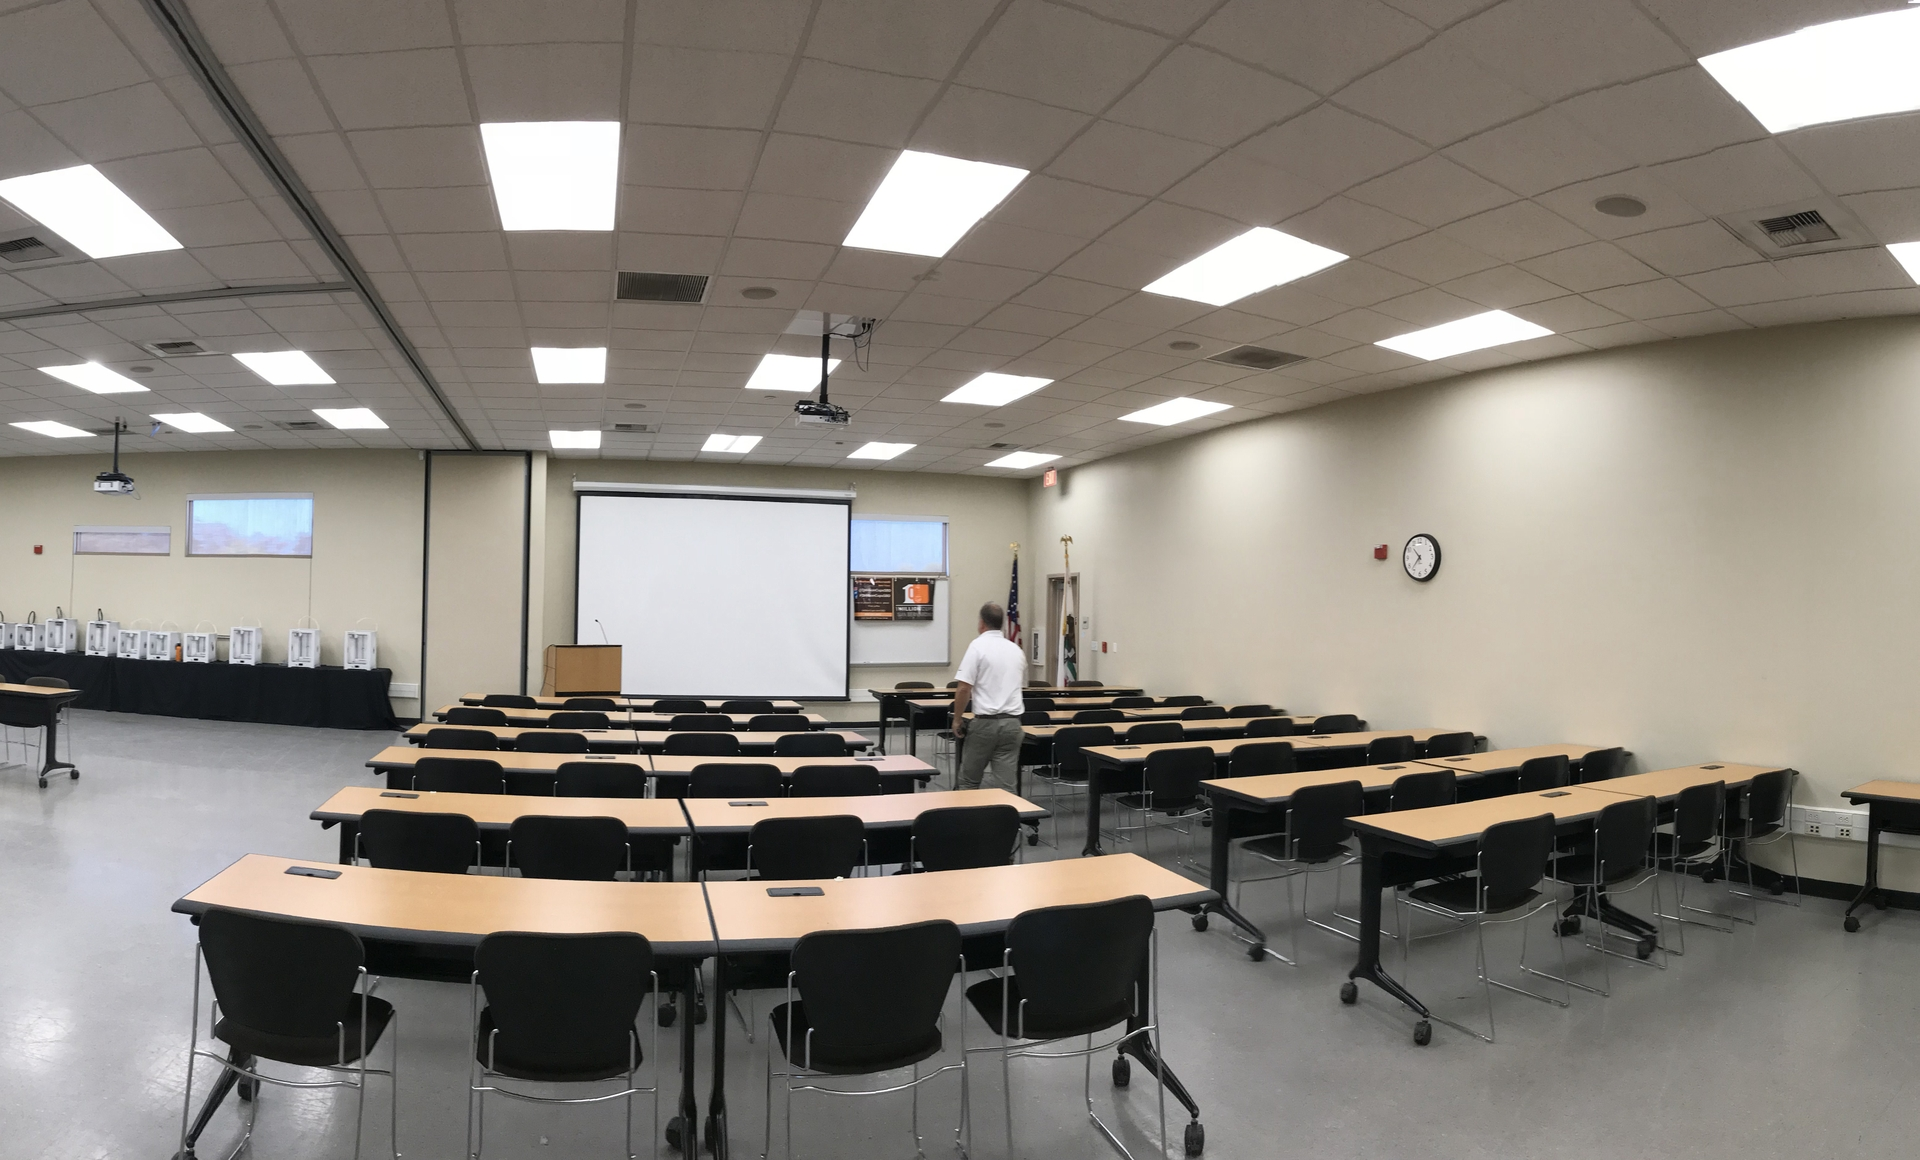 Students' learning now takes places in classrooms using LED lights and automatic motorized window and reflective shades.